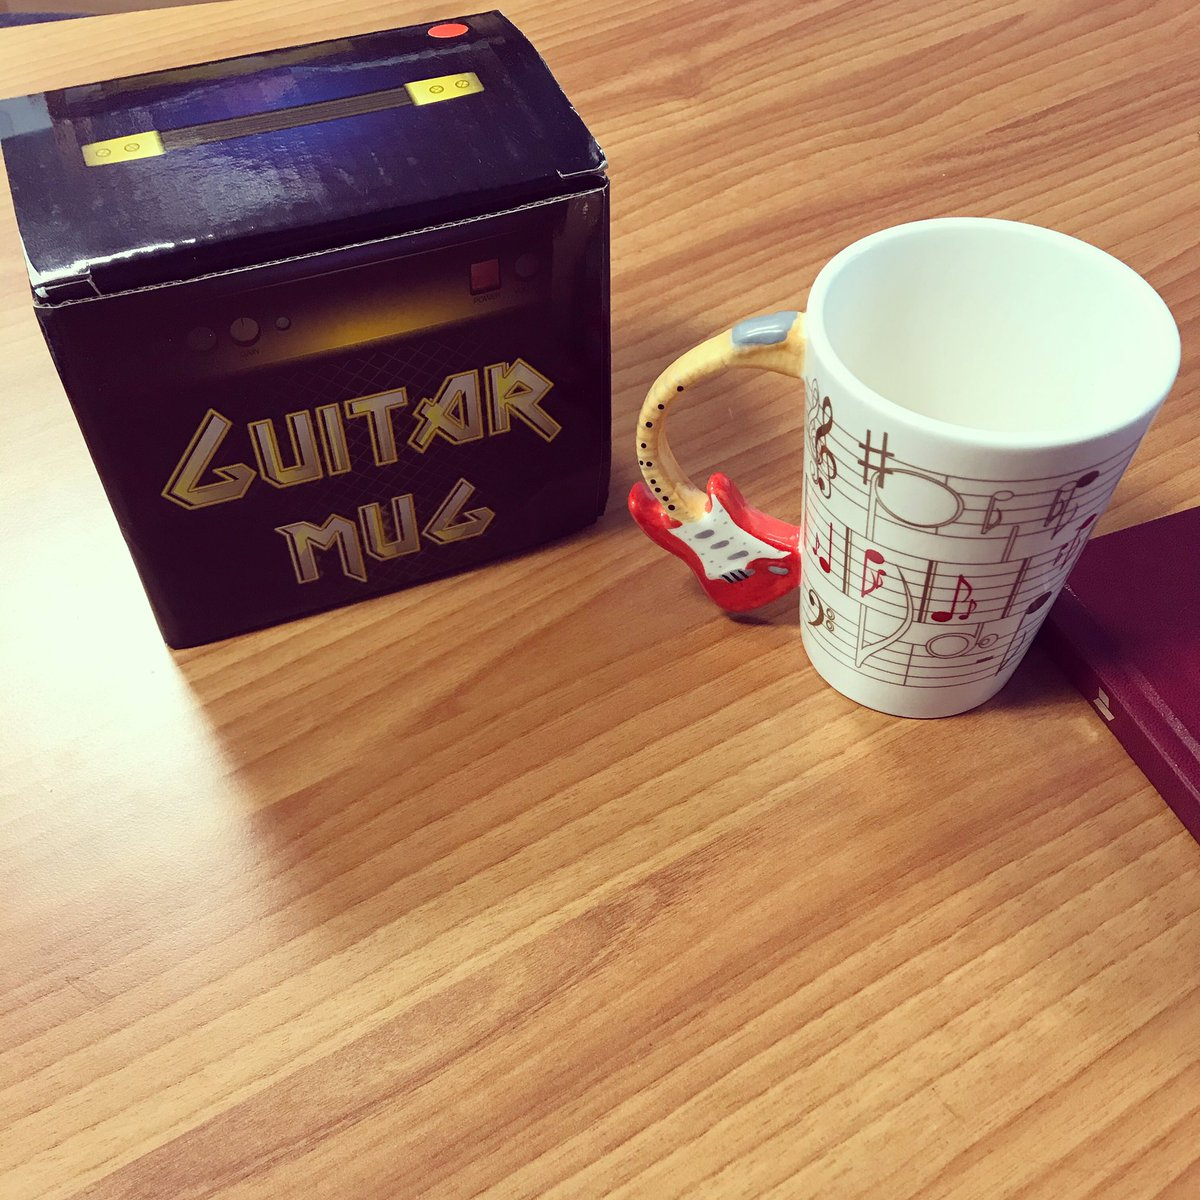 Got given this today! Absolutely perfect. #guitarmug #guitarist #redstratocaster #redstrat #musicnotes #coffee #recording #recordingstudio #recordingstudiolife #morningperson #audioproduction #ukmusic #devonpic.twitter.com/wSkVg3y002